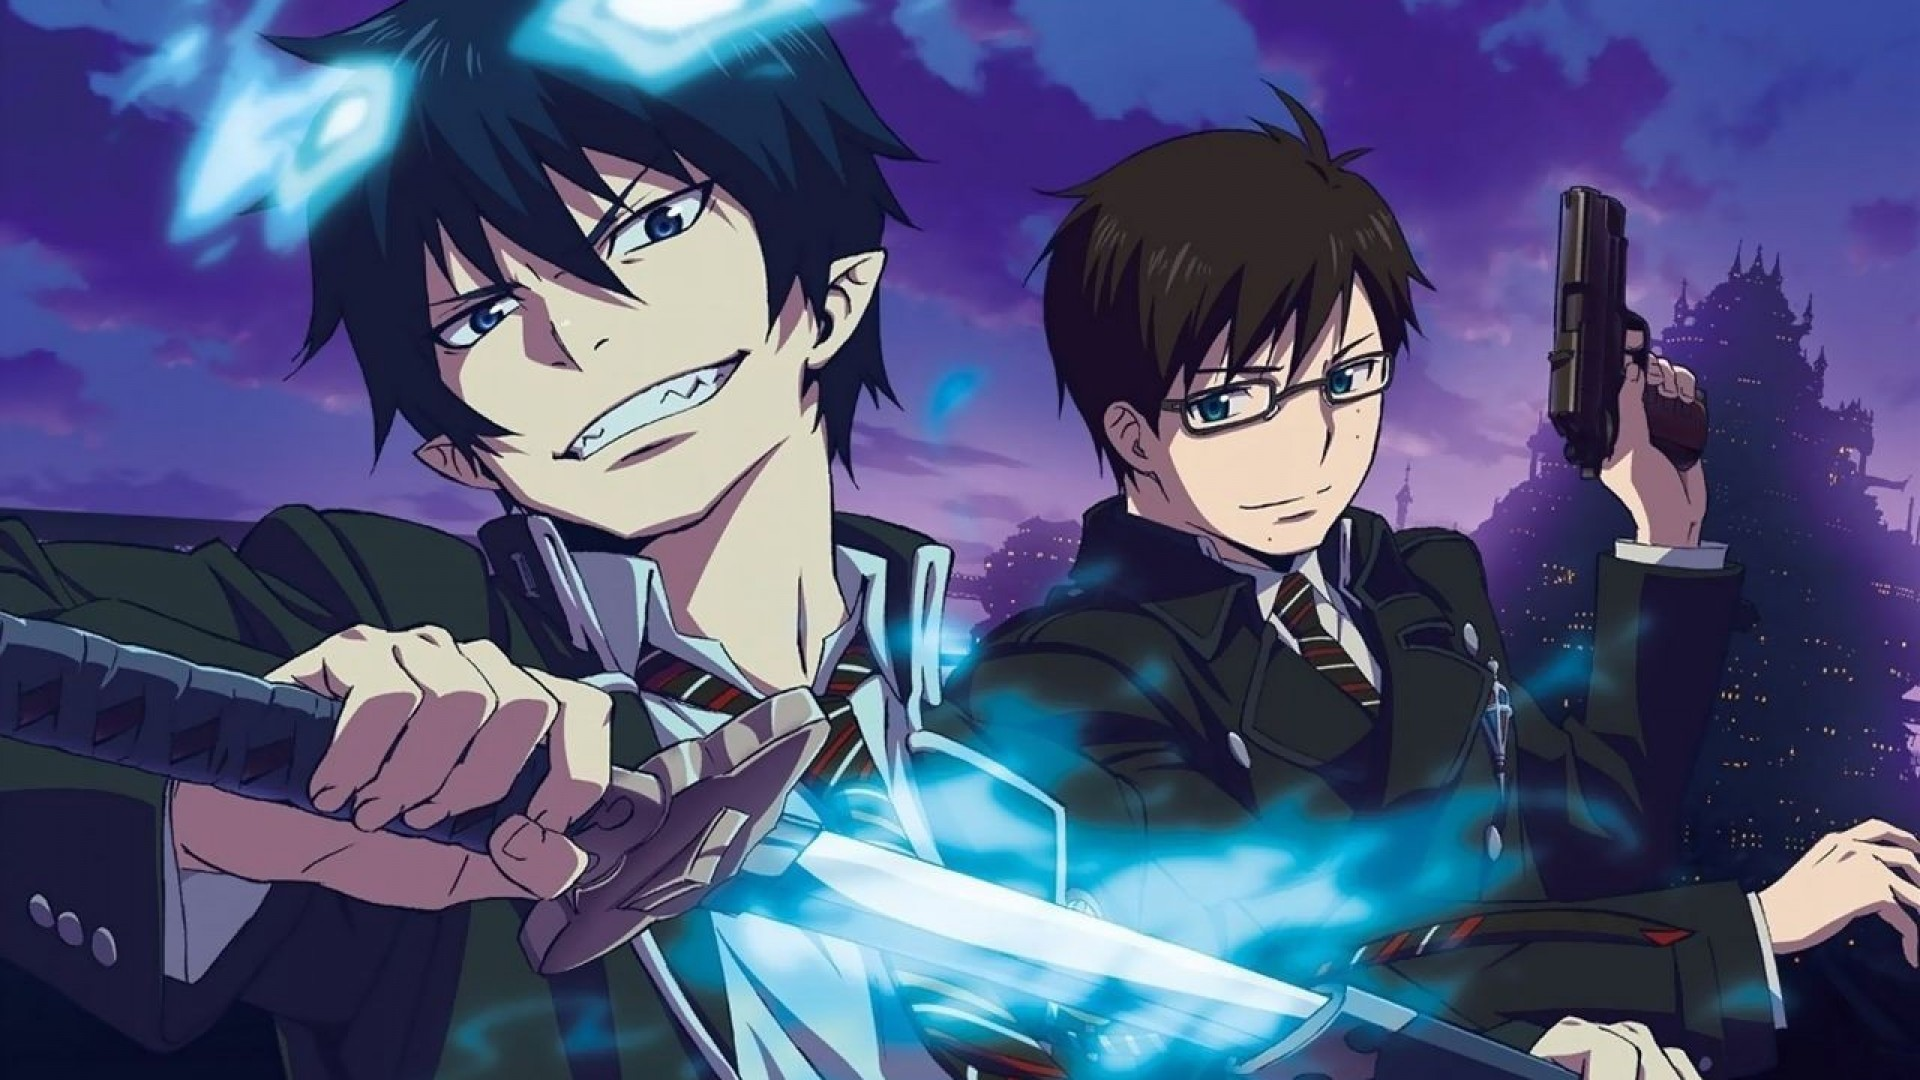 Shiemi, Rin and Yukio from Blue Exorcist wallpaper  Anime 1920x1080